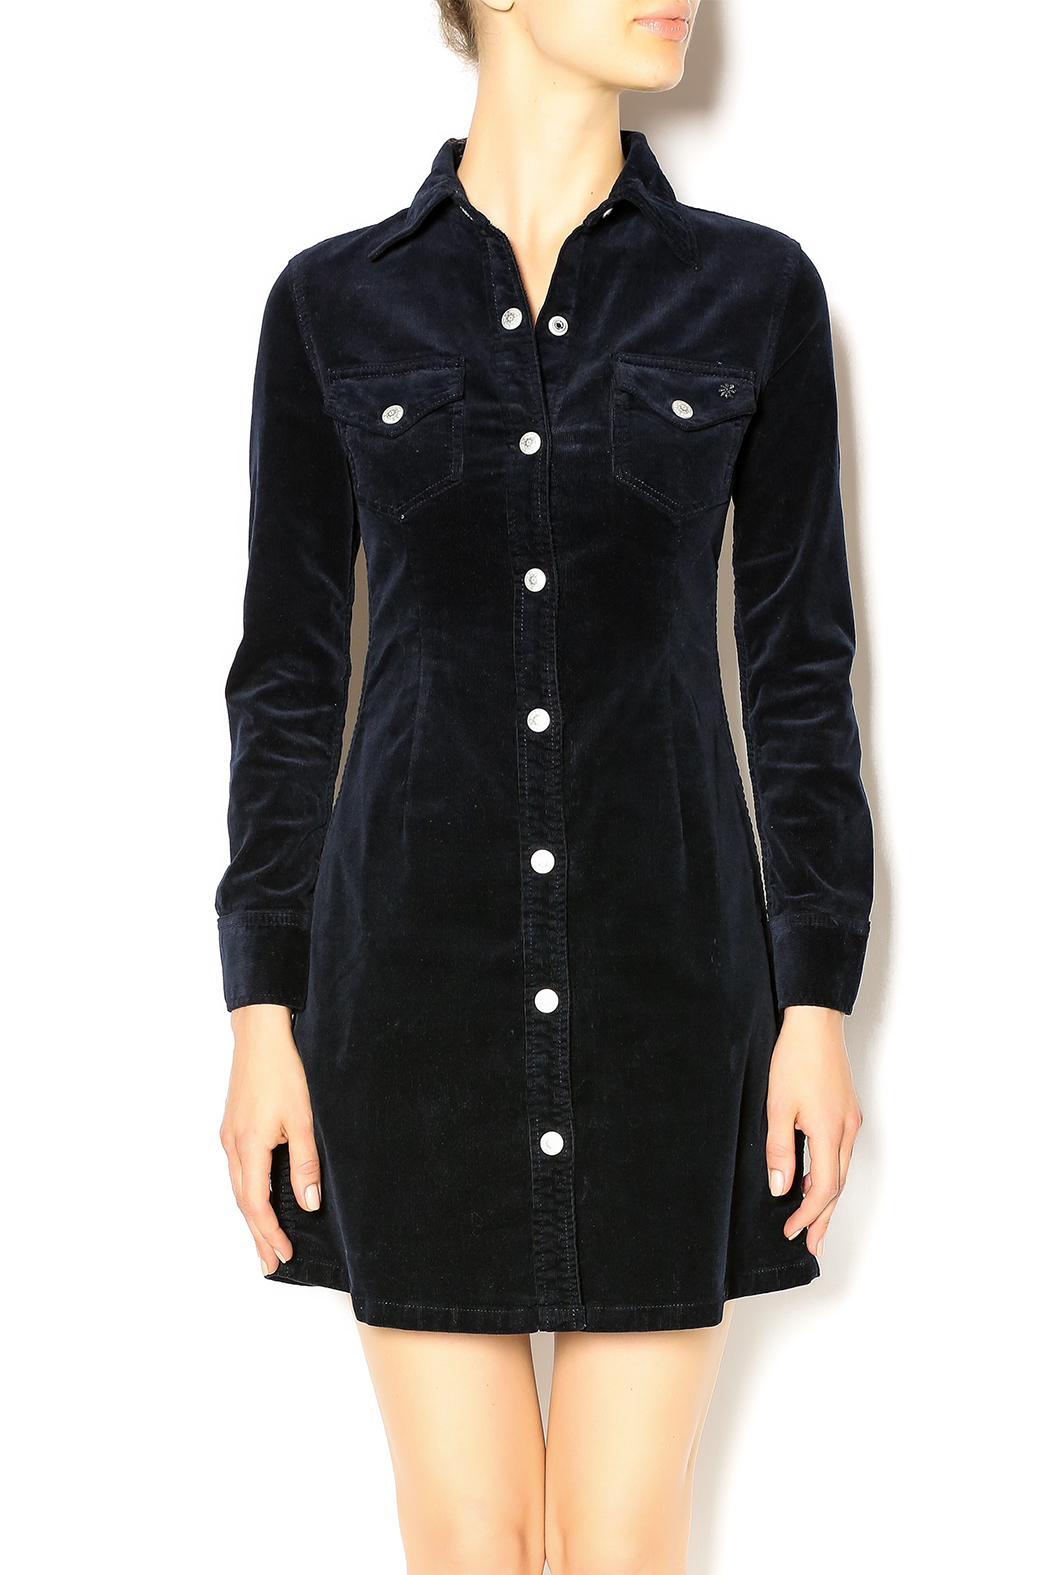 060a4cfd20 Alexa Chung for AG Pixie Dress from Park City by Mary Jane s ...